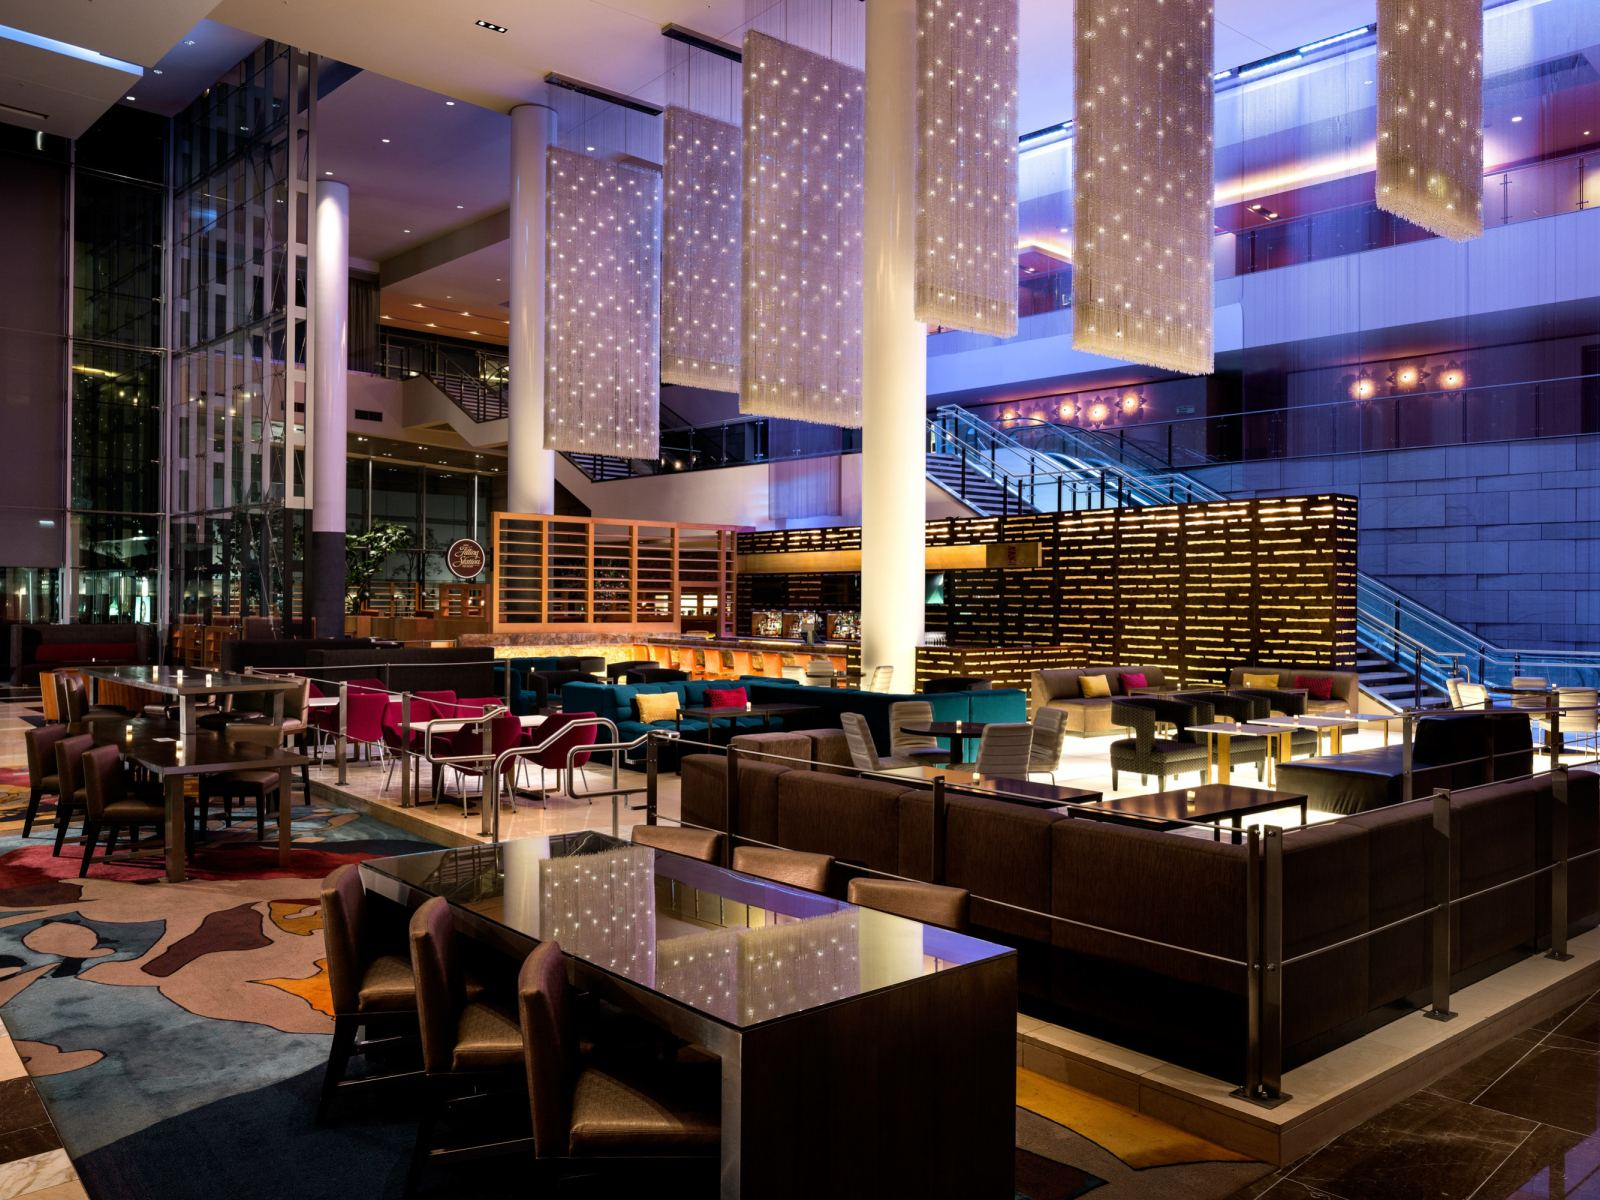 4000-JWLA-Glance-Lobby-Bar-High-Rez